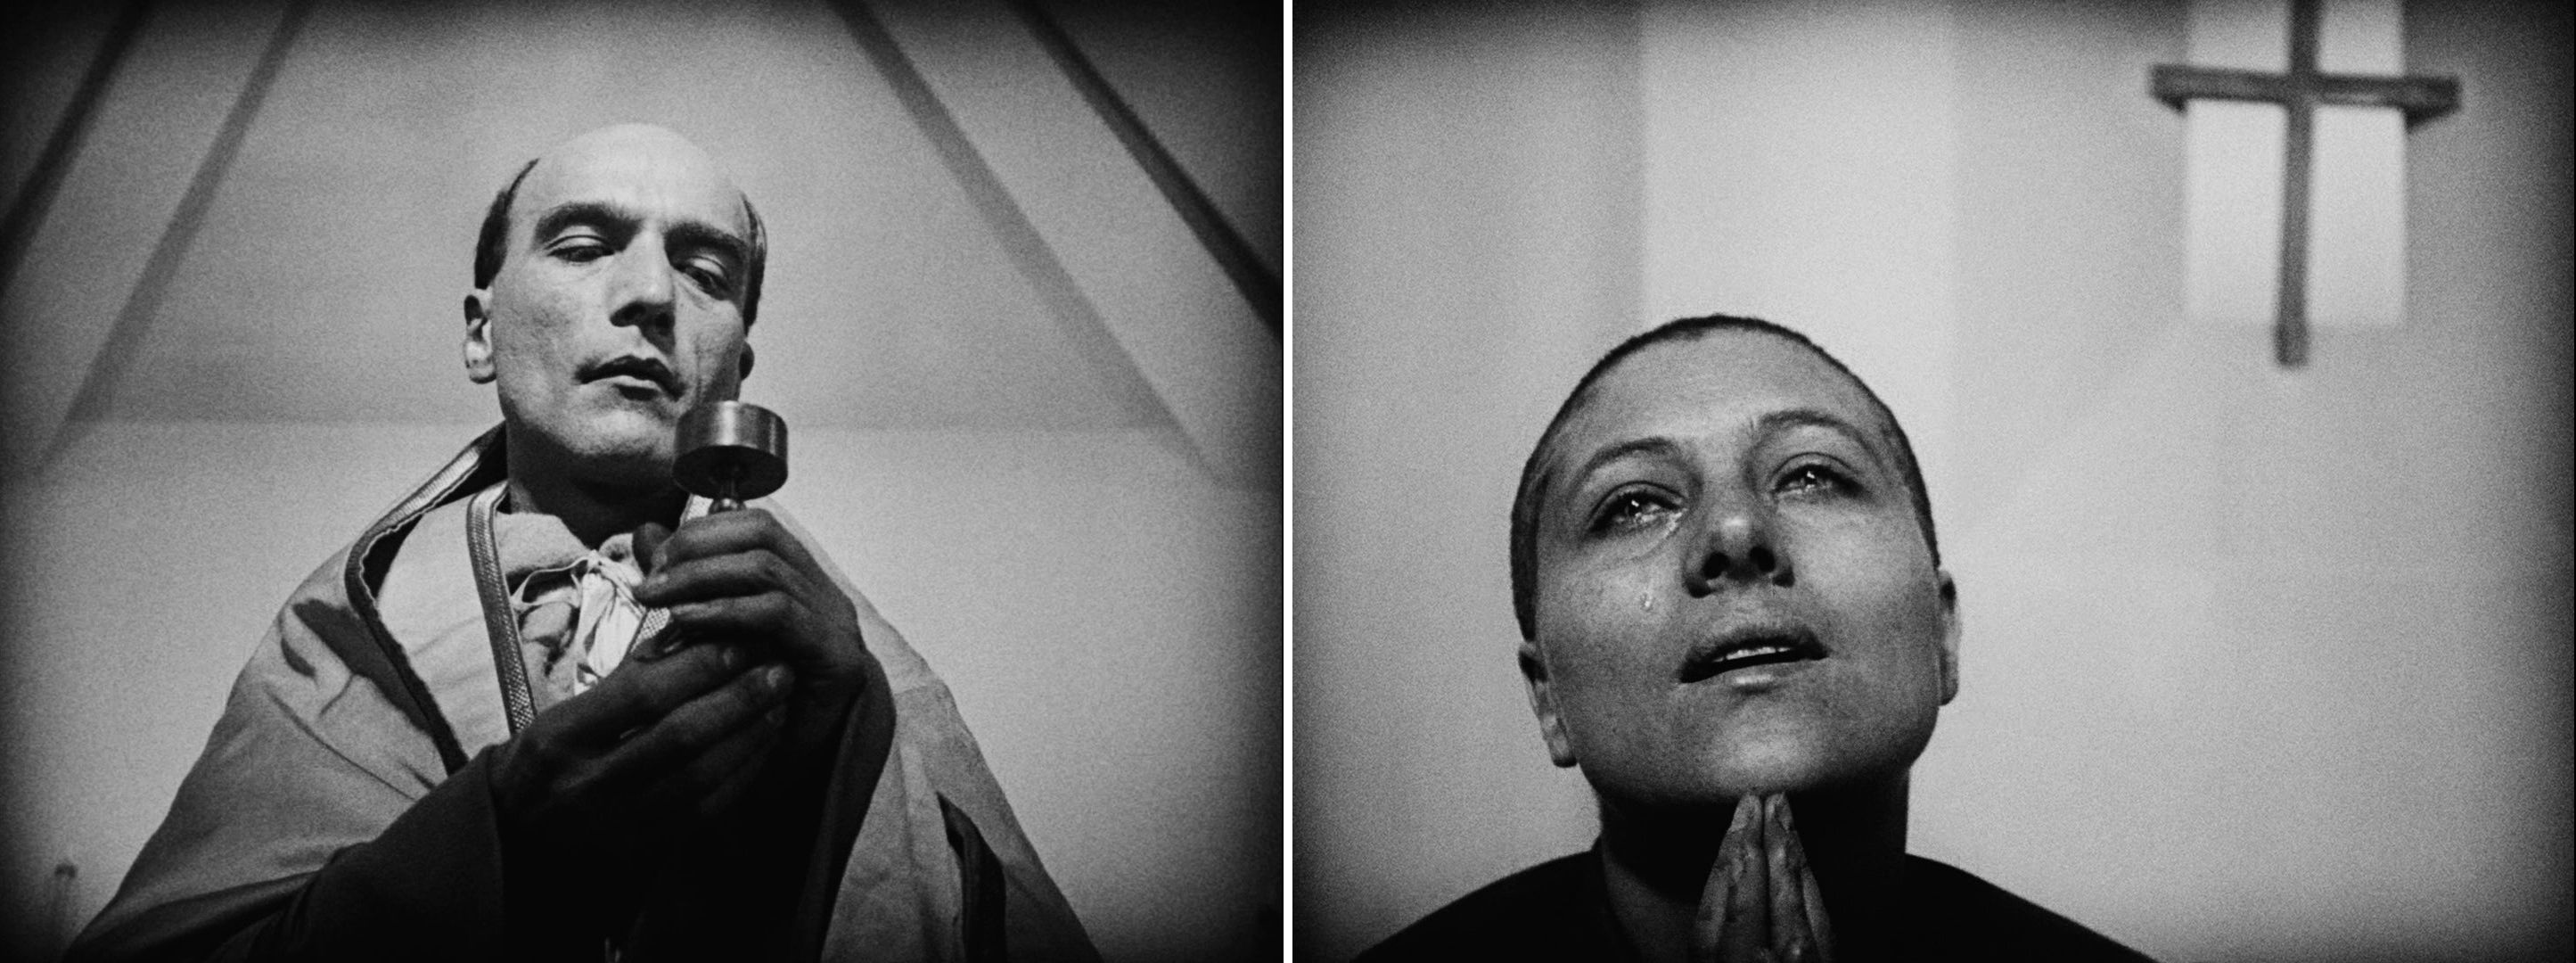 The Passion of Joan of Arc 3